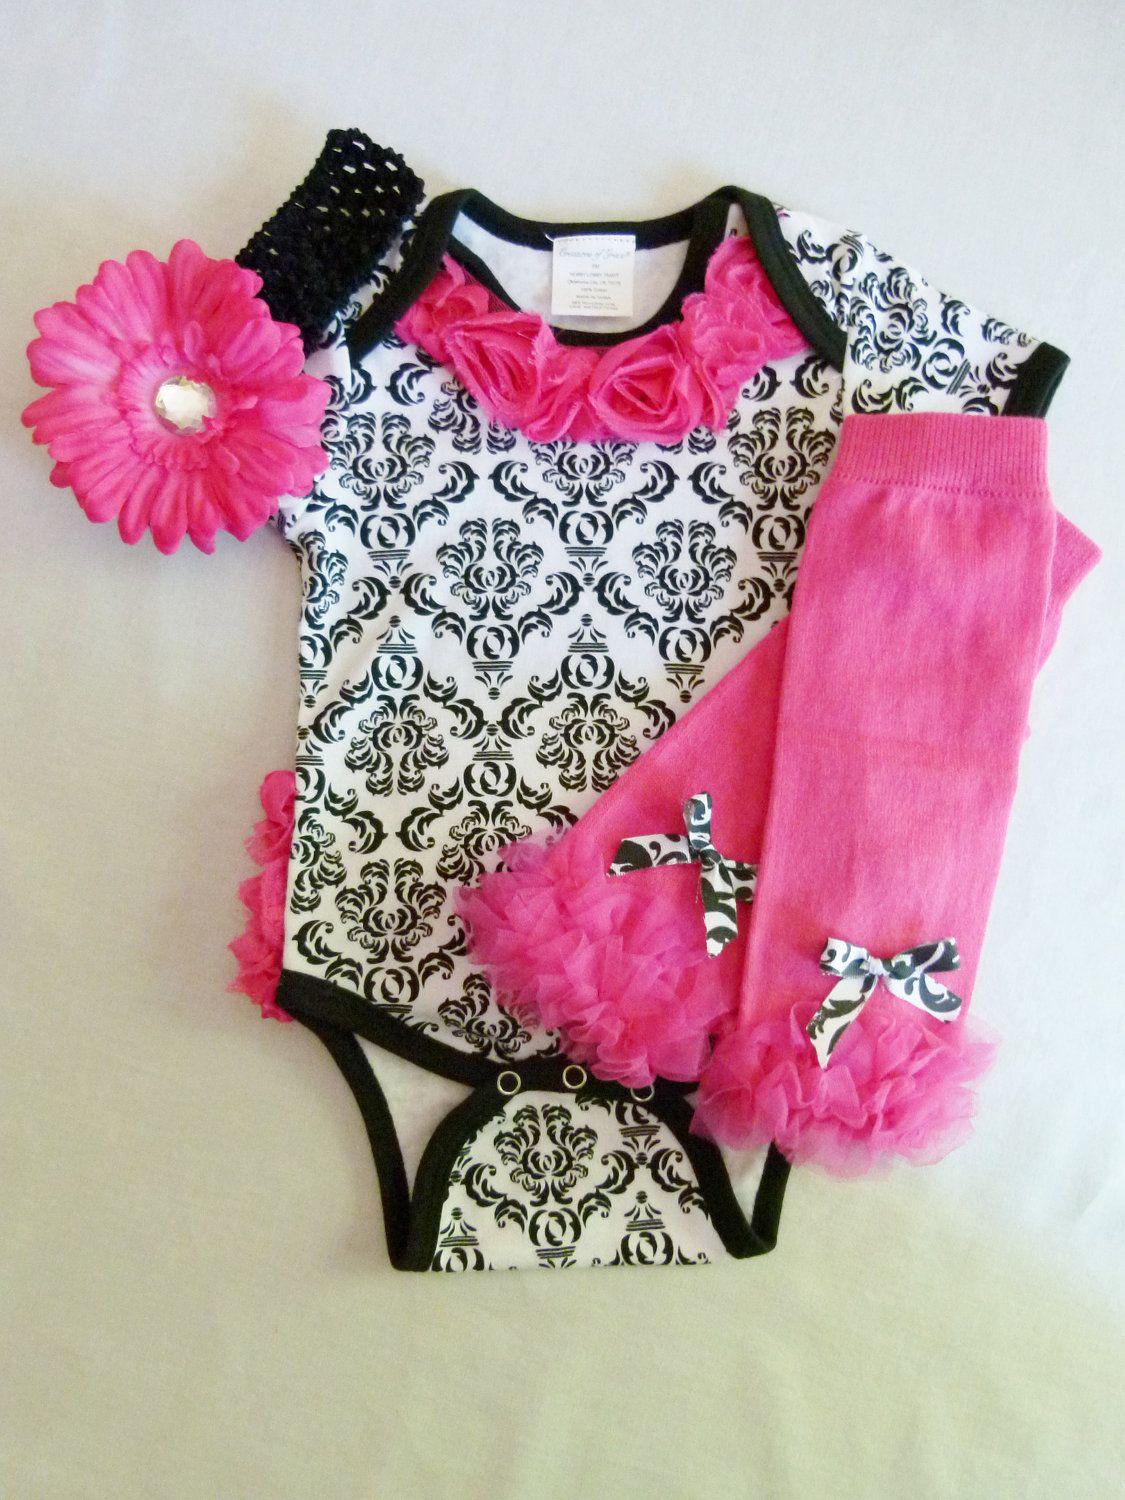 Baby Girl Gift Set Damask Hot Pink Onesie With Chiffon Rosette ...